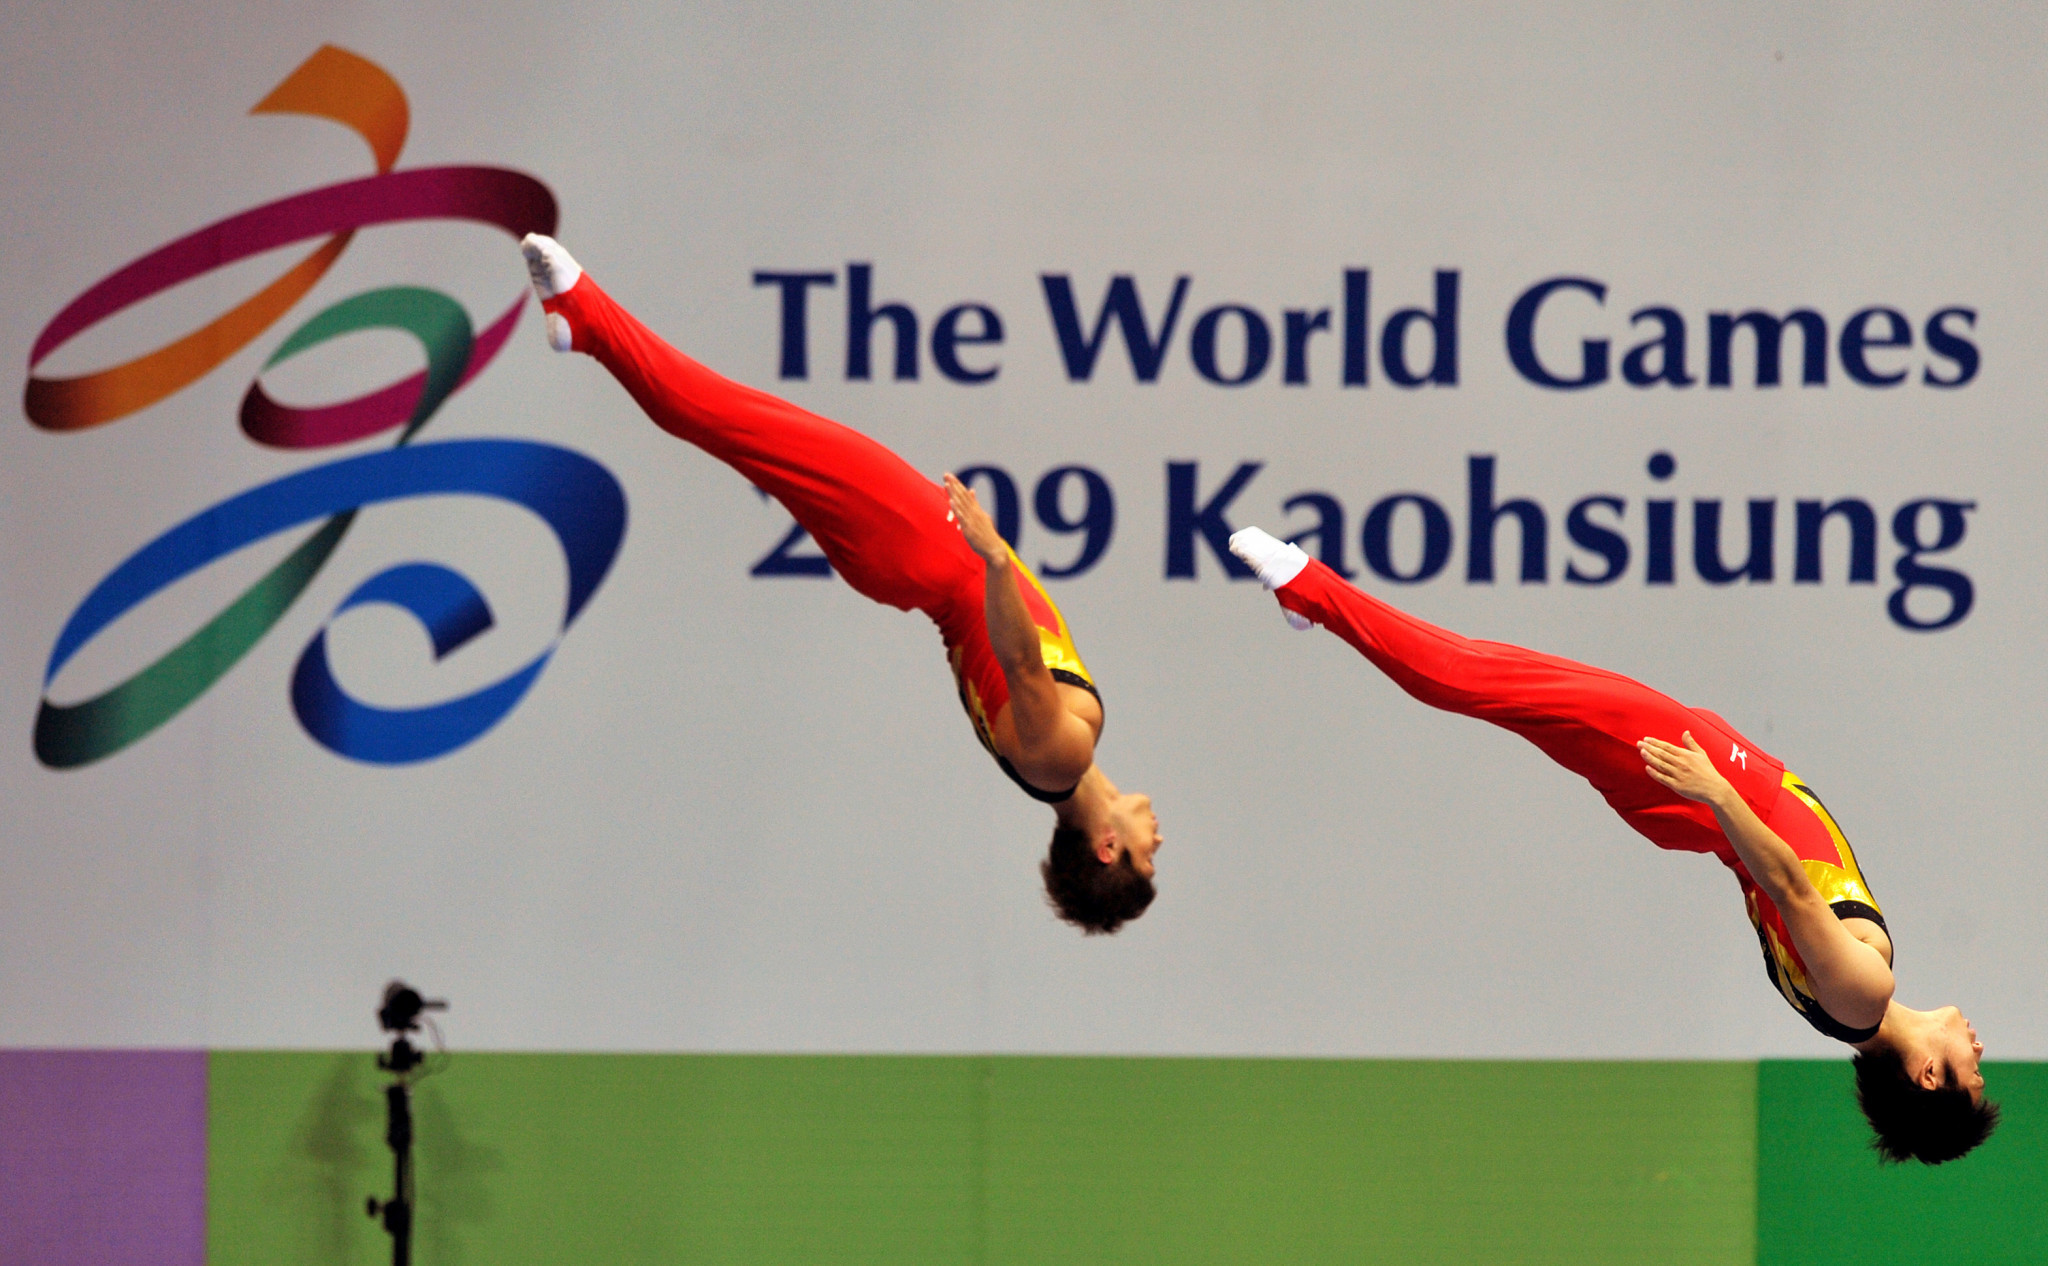 Kaohsiung hosted The World Games in 2009 ©Getty Images